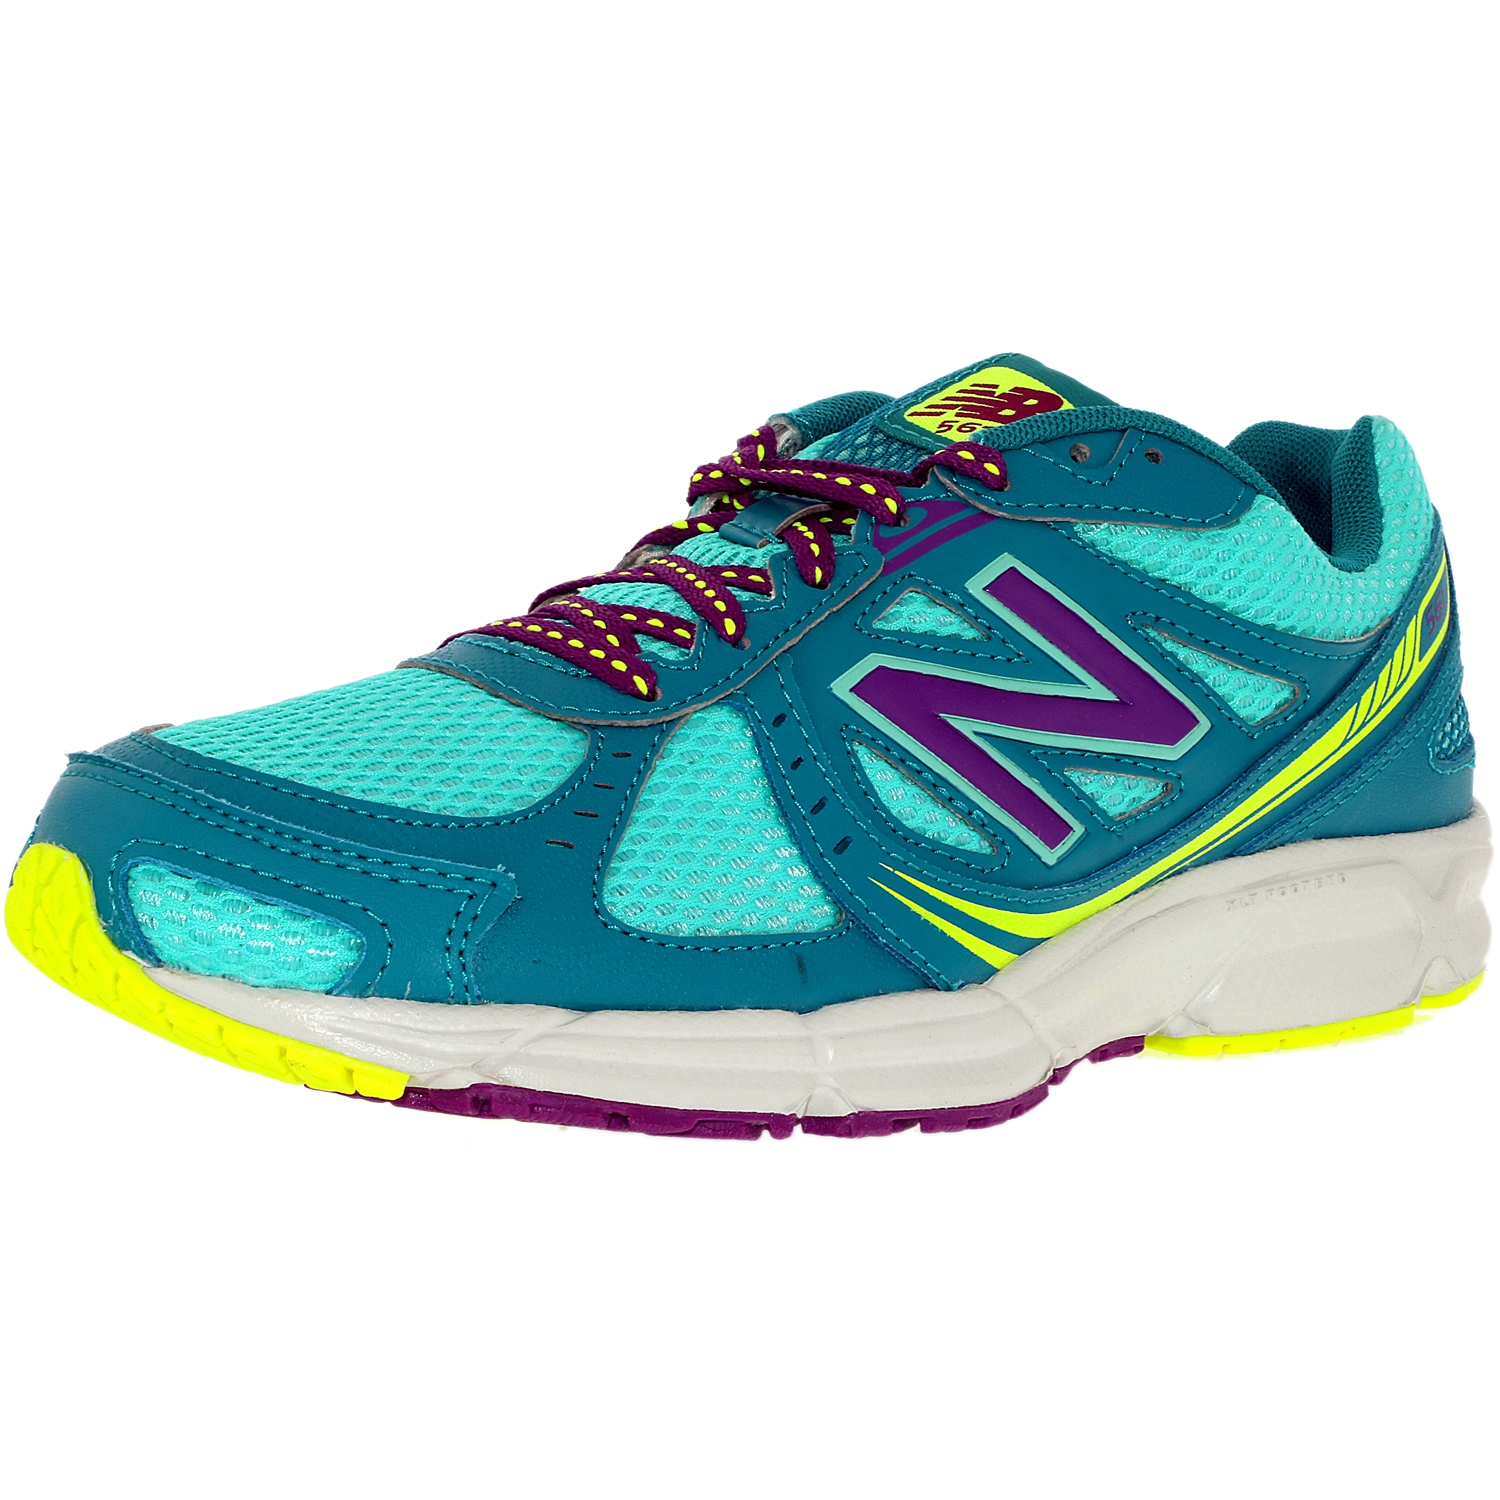 New Balance Women's Running Course Black Purple White Red Ankle-High Shoe 9.5W by New Balance